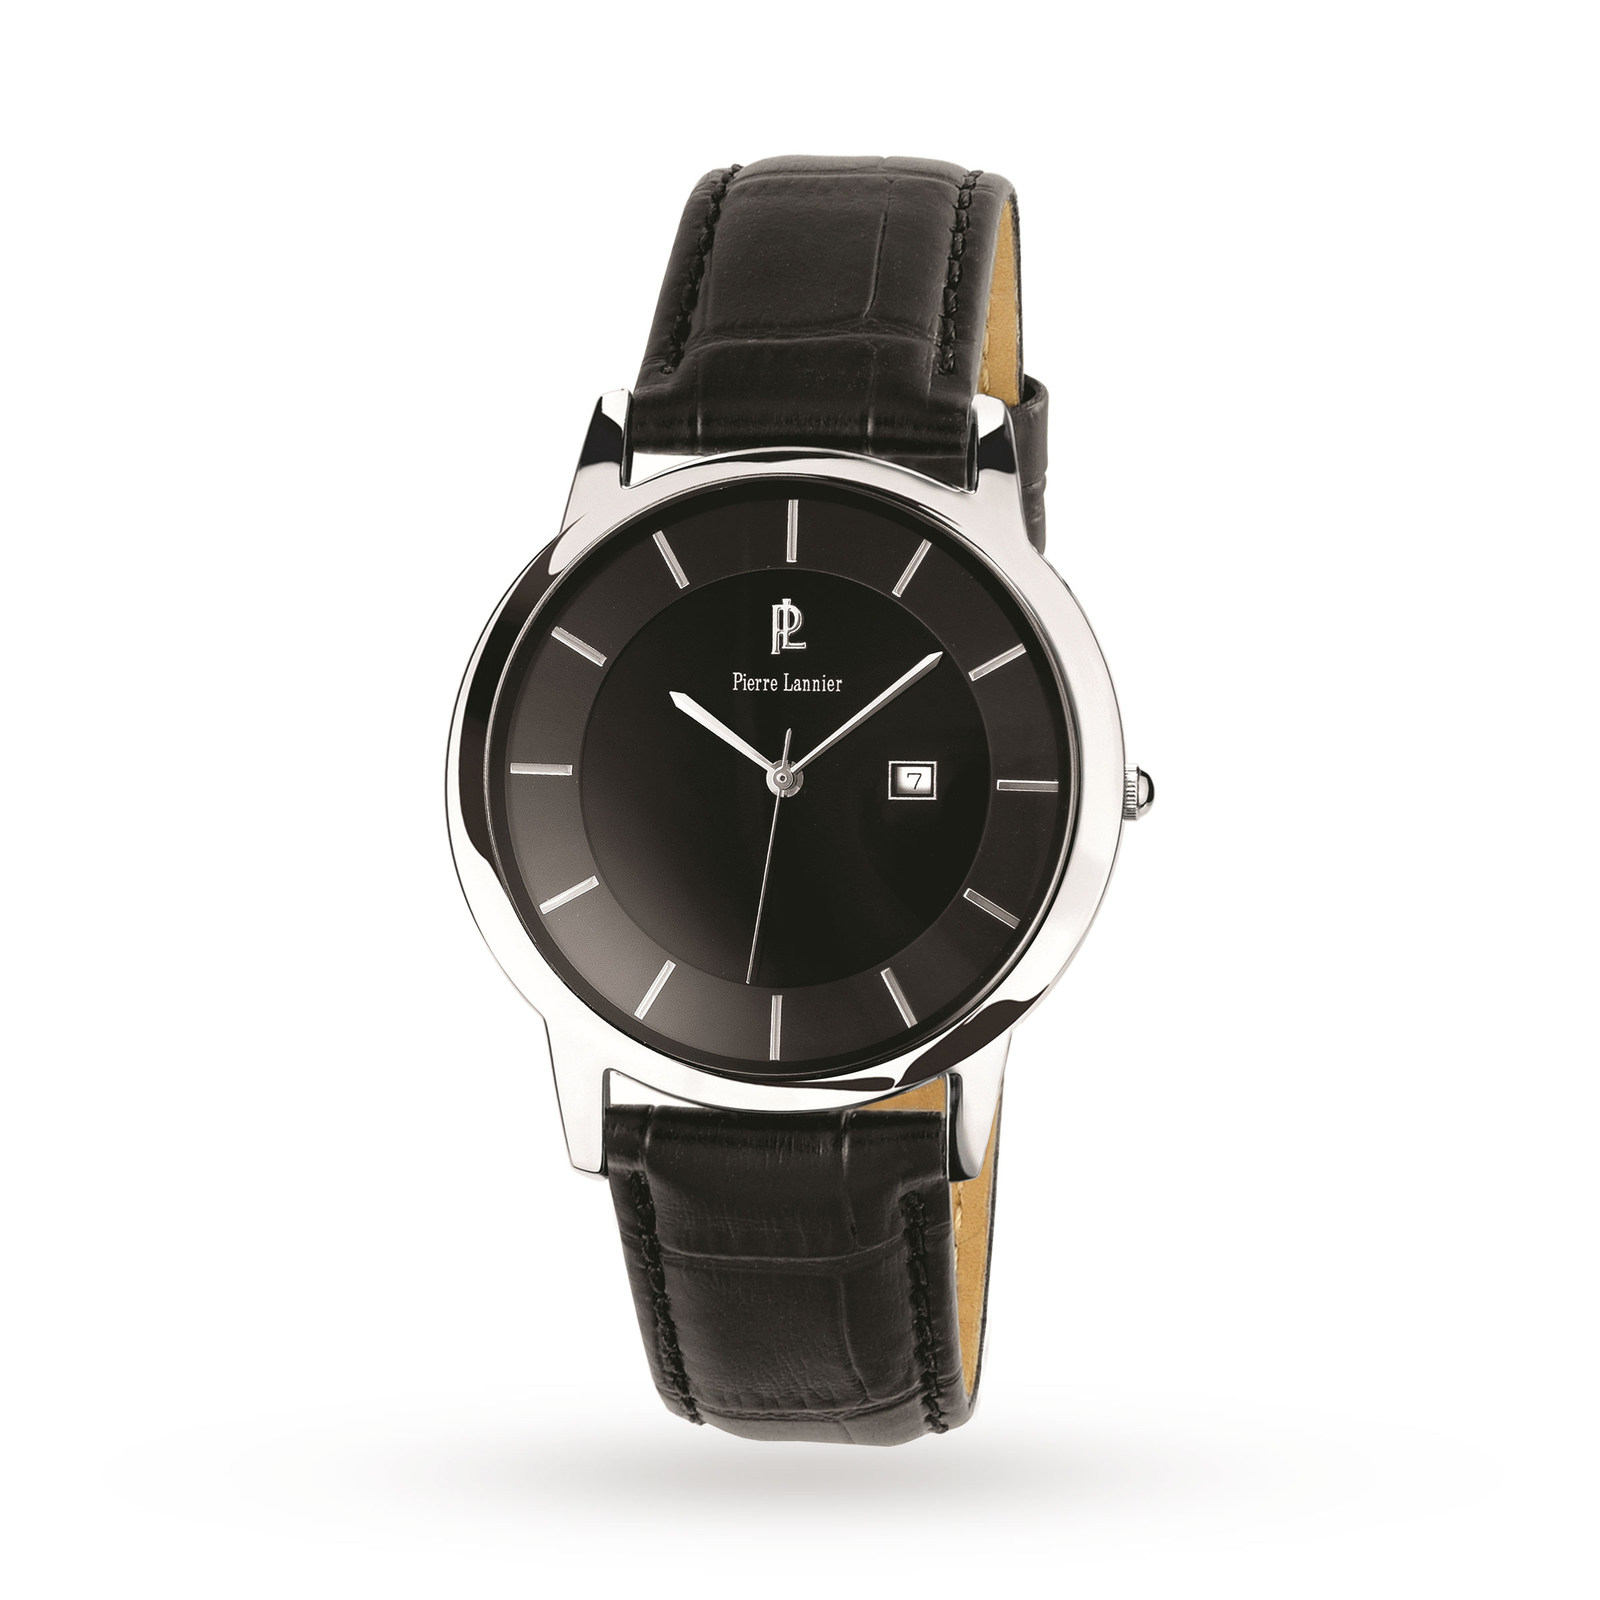 Pierre Lannier Men's Watch